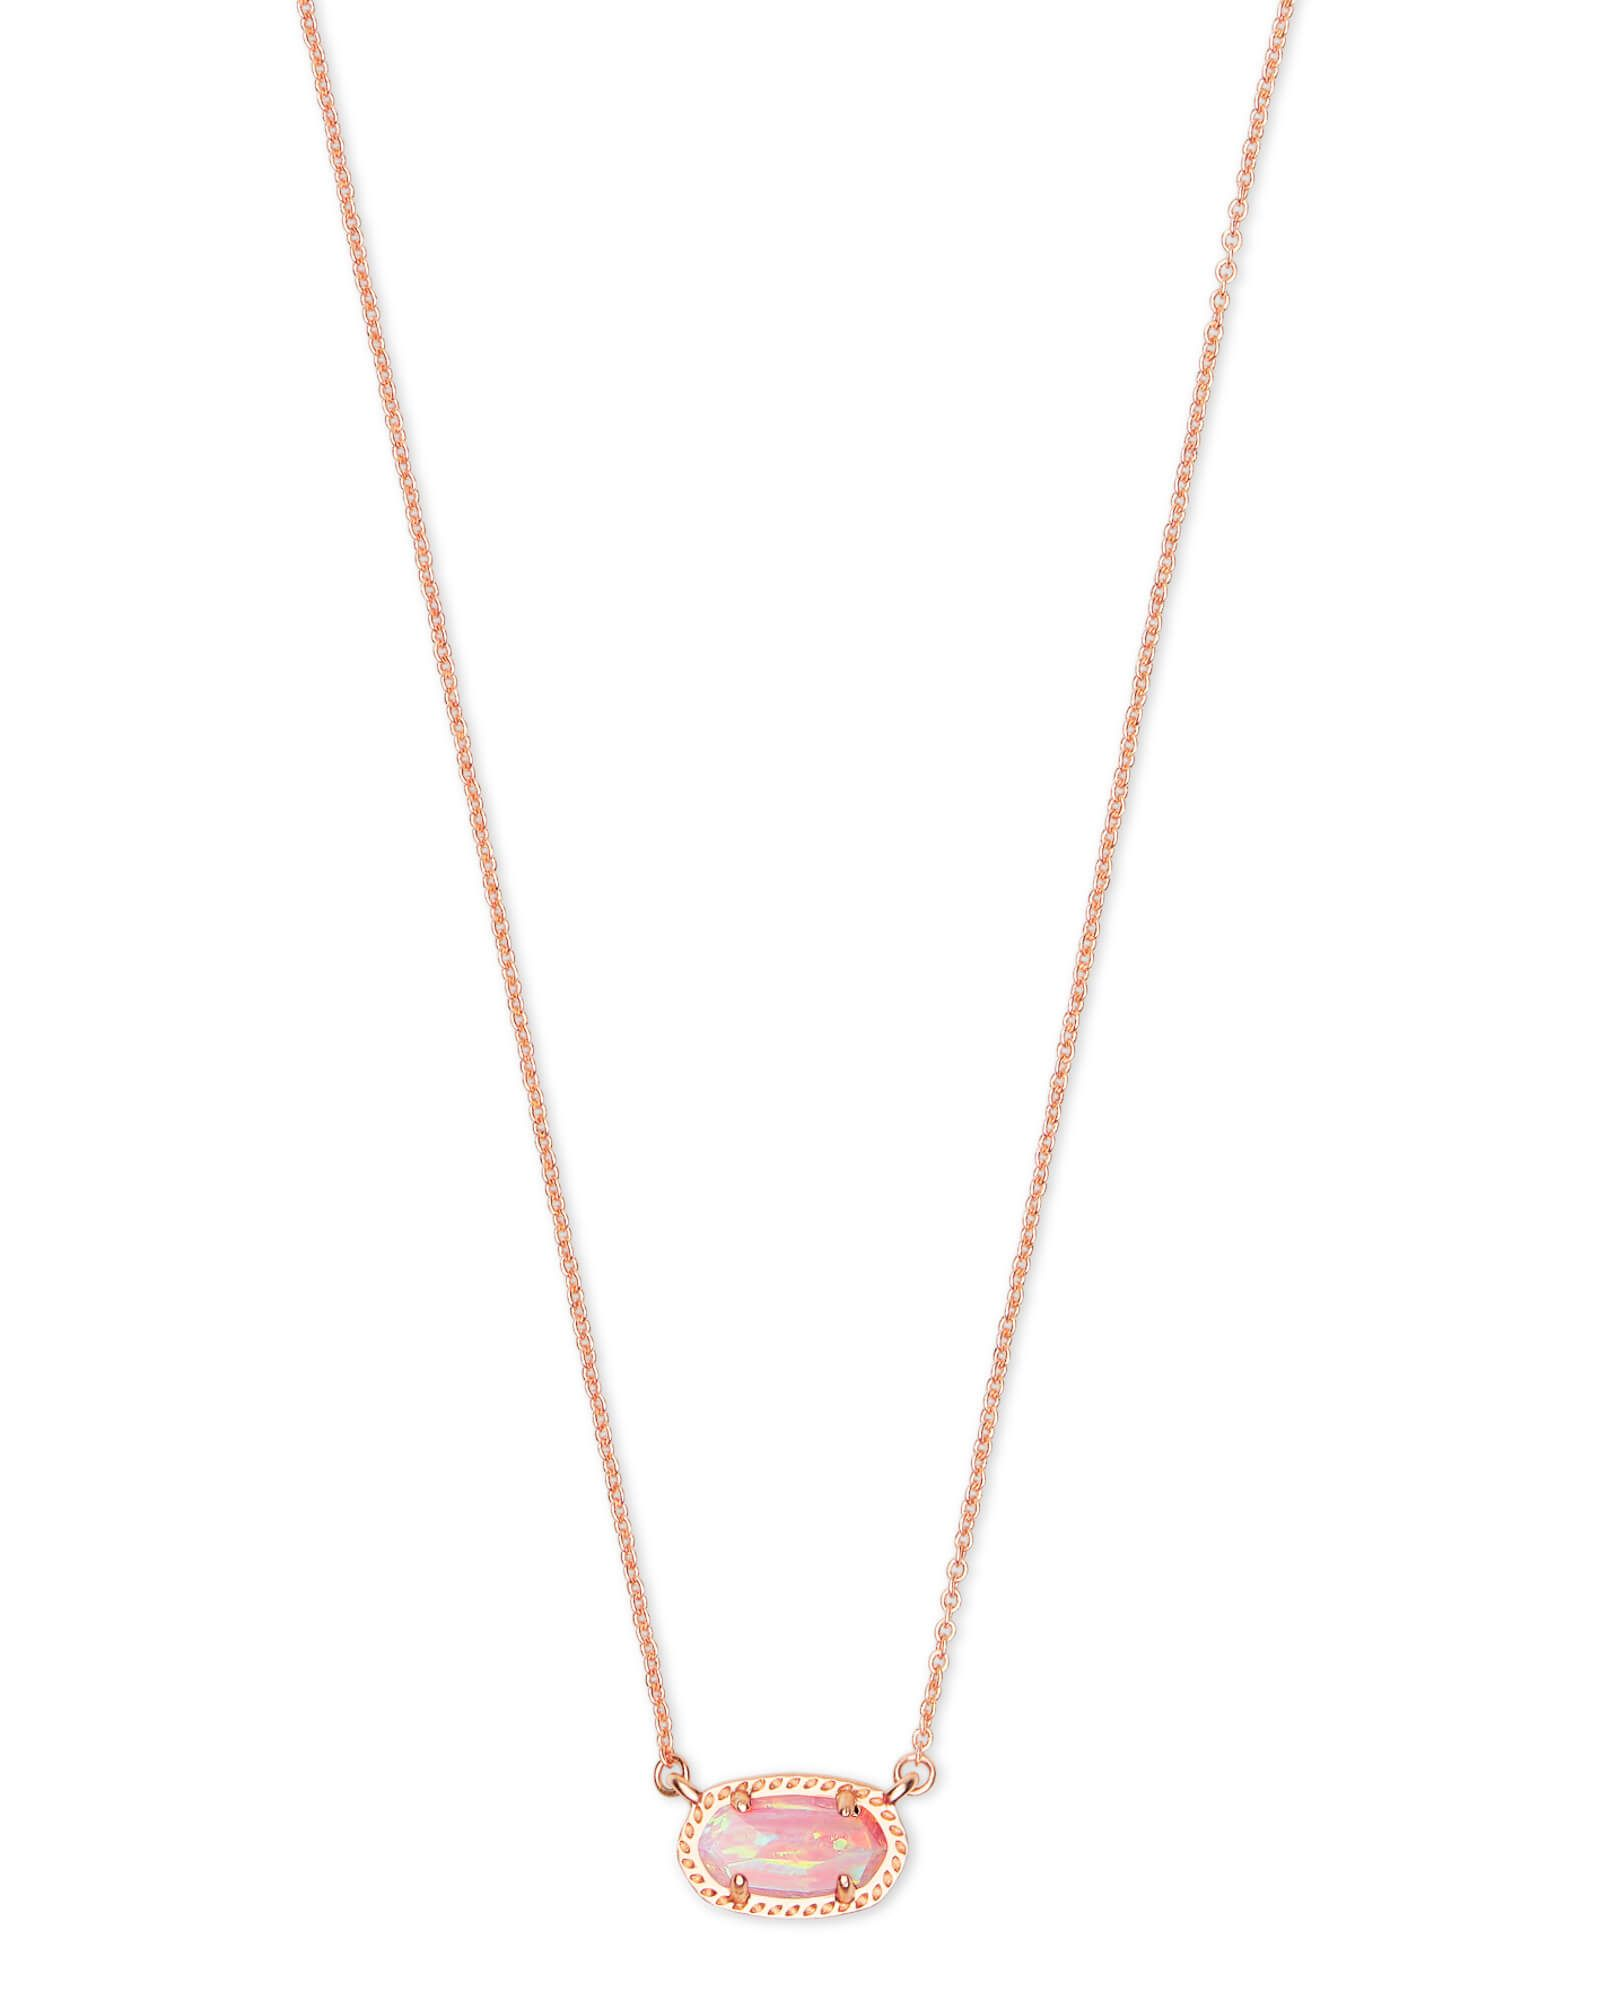 Get The Ember Rose Gold Pendant Necklace In Light Pink Opal For A Delicate Chain That Elavates Minima Rose Gold Pendant Necklace Rose Gold Pendant Gold Pendant